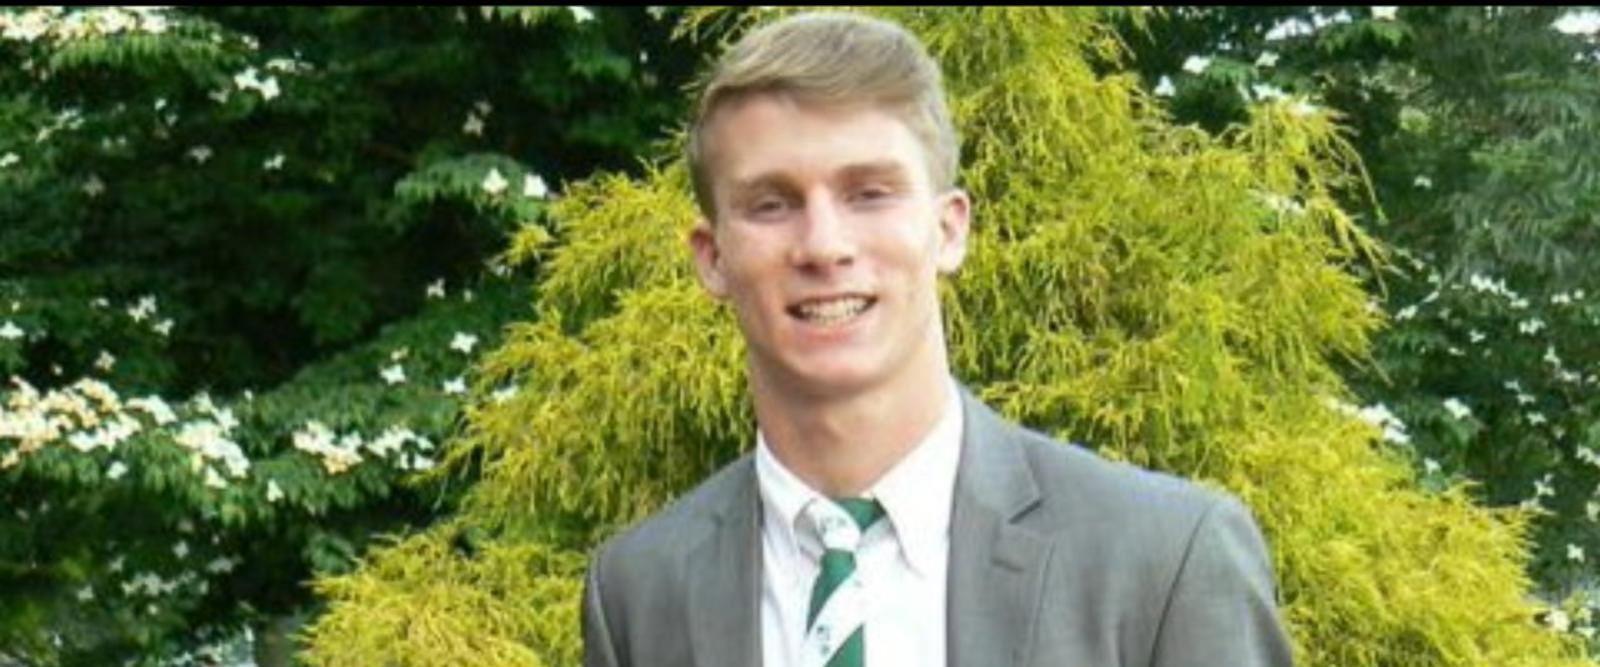 VIDEO: No sign of foul play in death of college student: Bermuda authorities